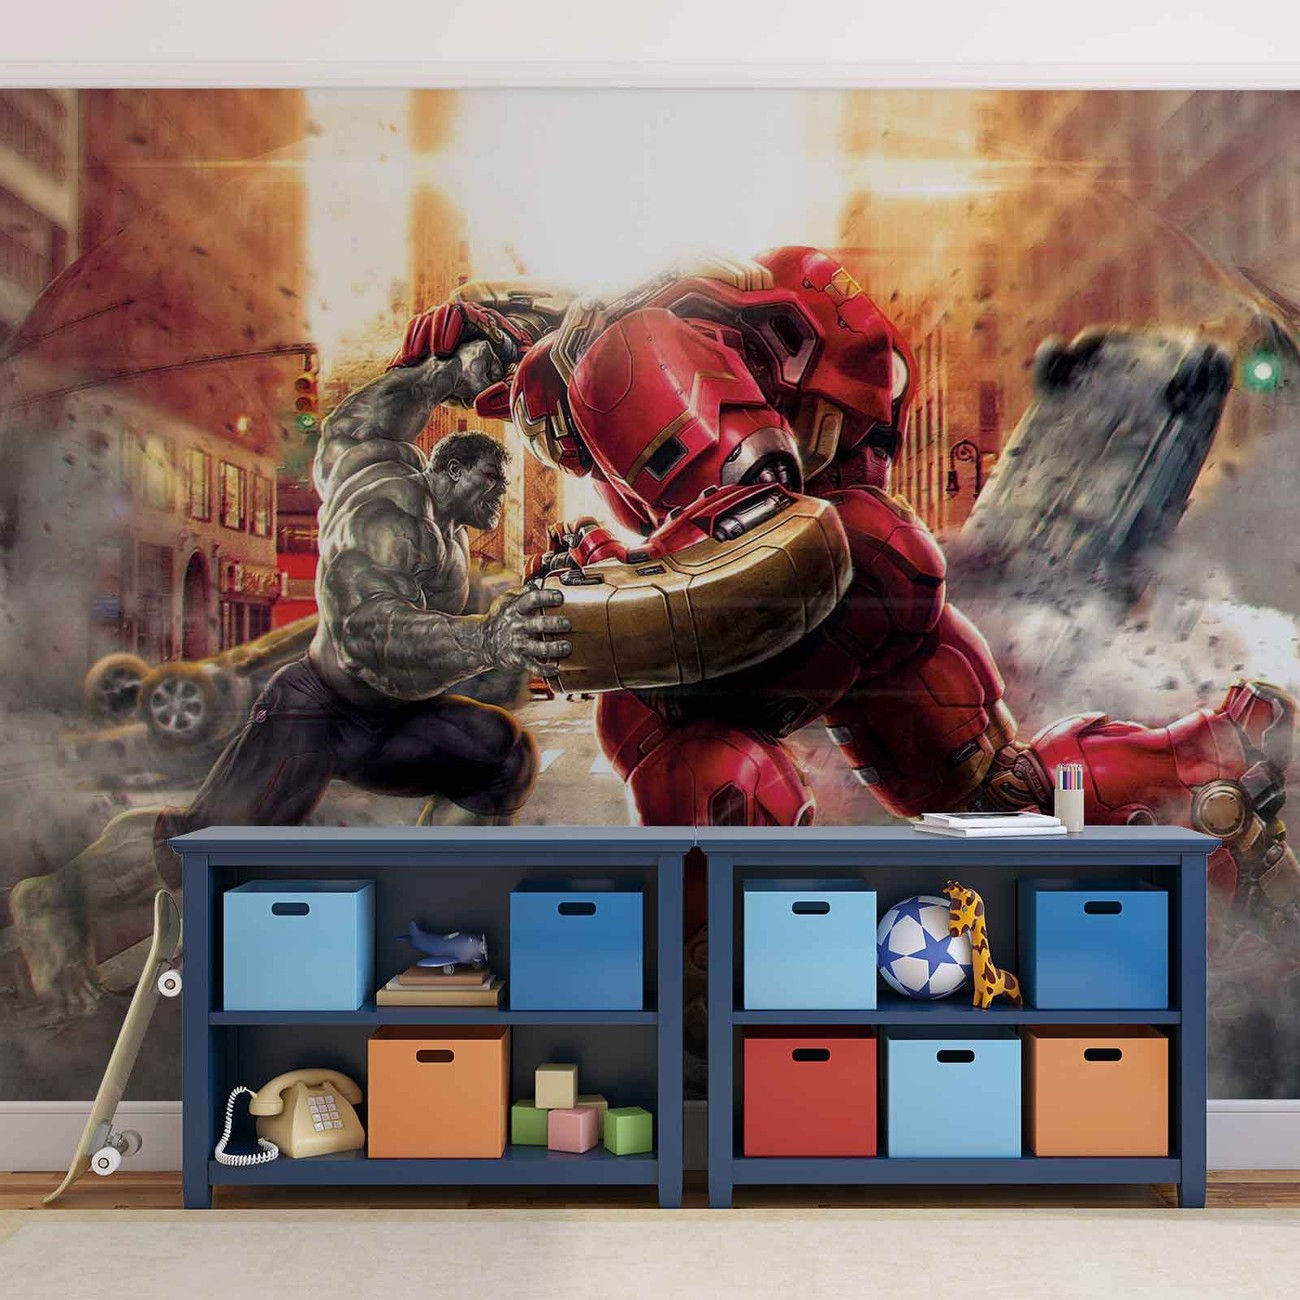 Marvel avengers fighting allies wall paper mural buy at for Avengers wall mural uk